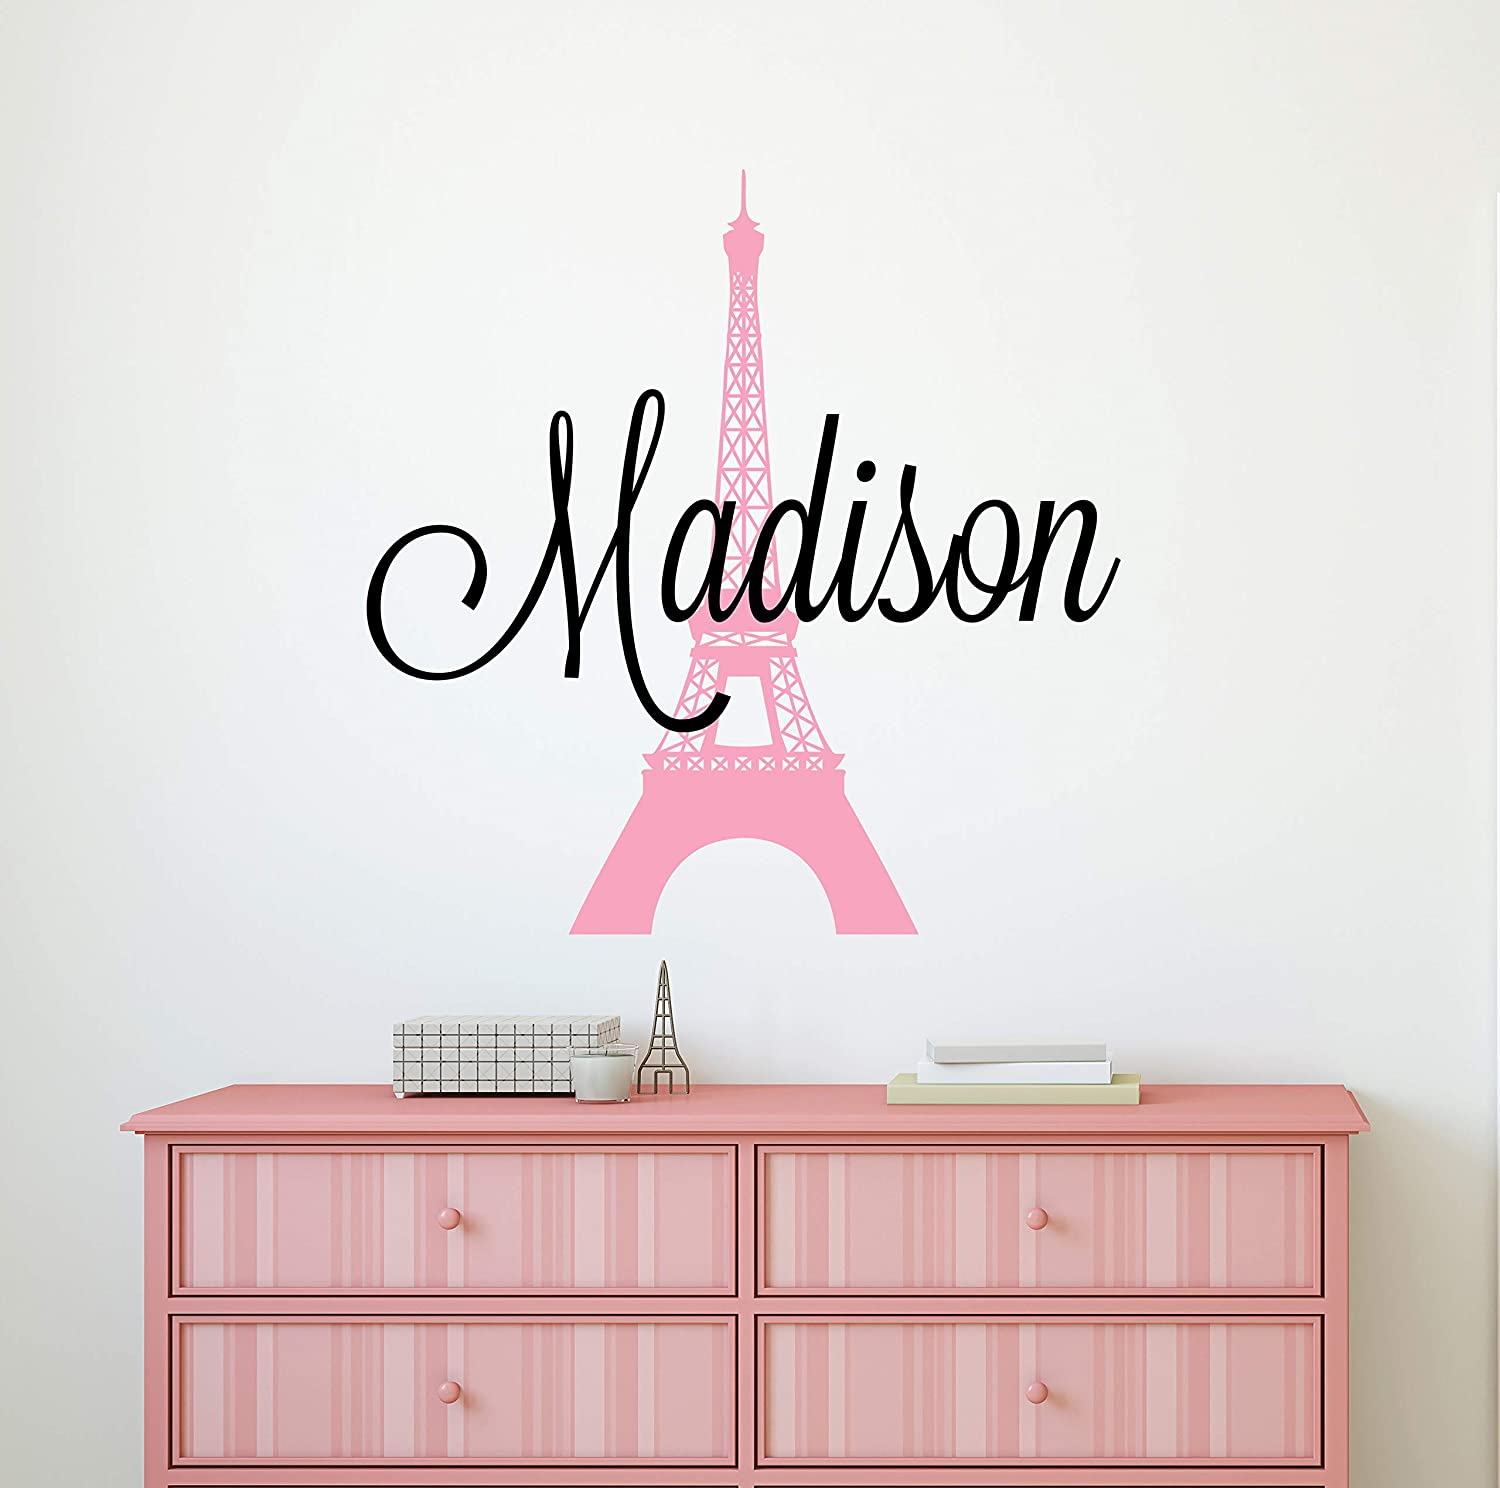 Custom Name Paris Wall Decal - Girls Personalized Name Eiffel Tower Wall Decor - Girls Name Sign Stencil Monogram Bedroom Room Wall Art Mural Vinyl Sticker (34